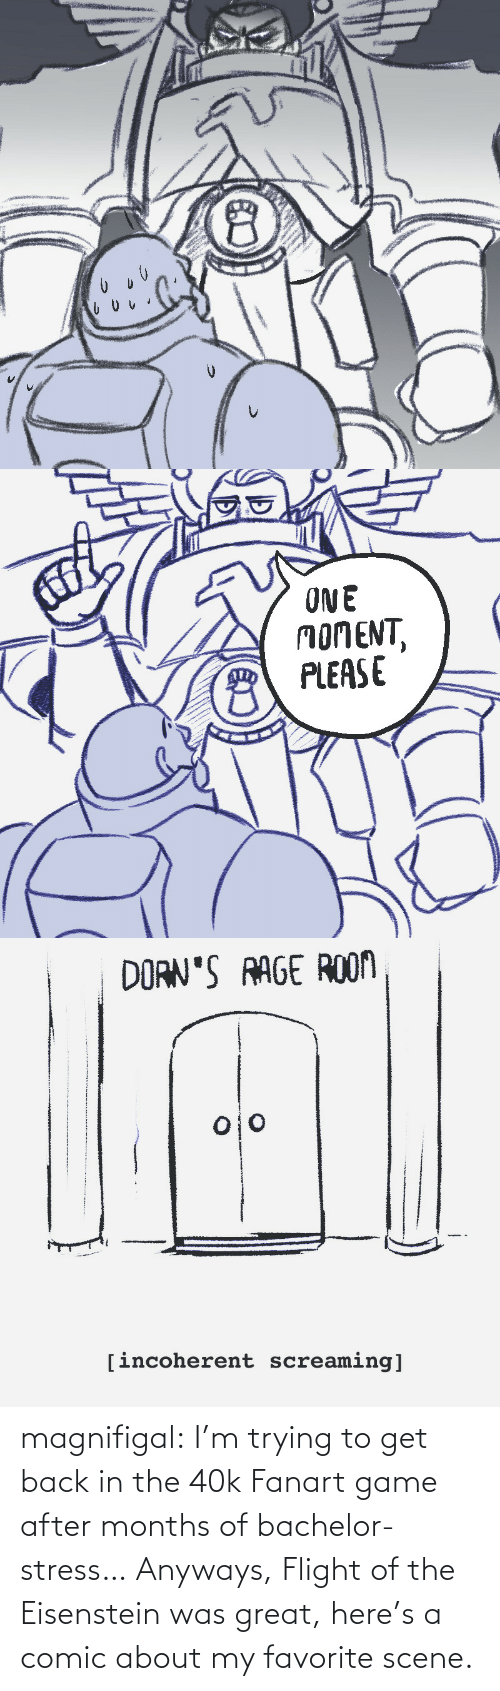 Bachelor: magnifigal:  I'm trying to get back in the 40k Fanart game after months of bachelor-stress… Anyways, Flight of the Eisenstein was great, here's a comic about my favorite scene.